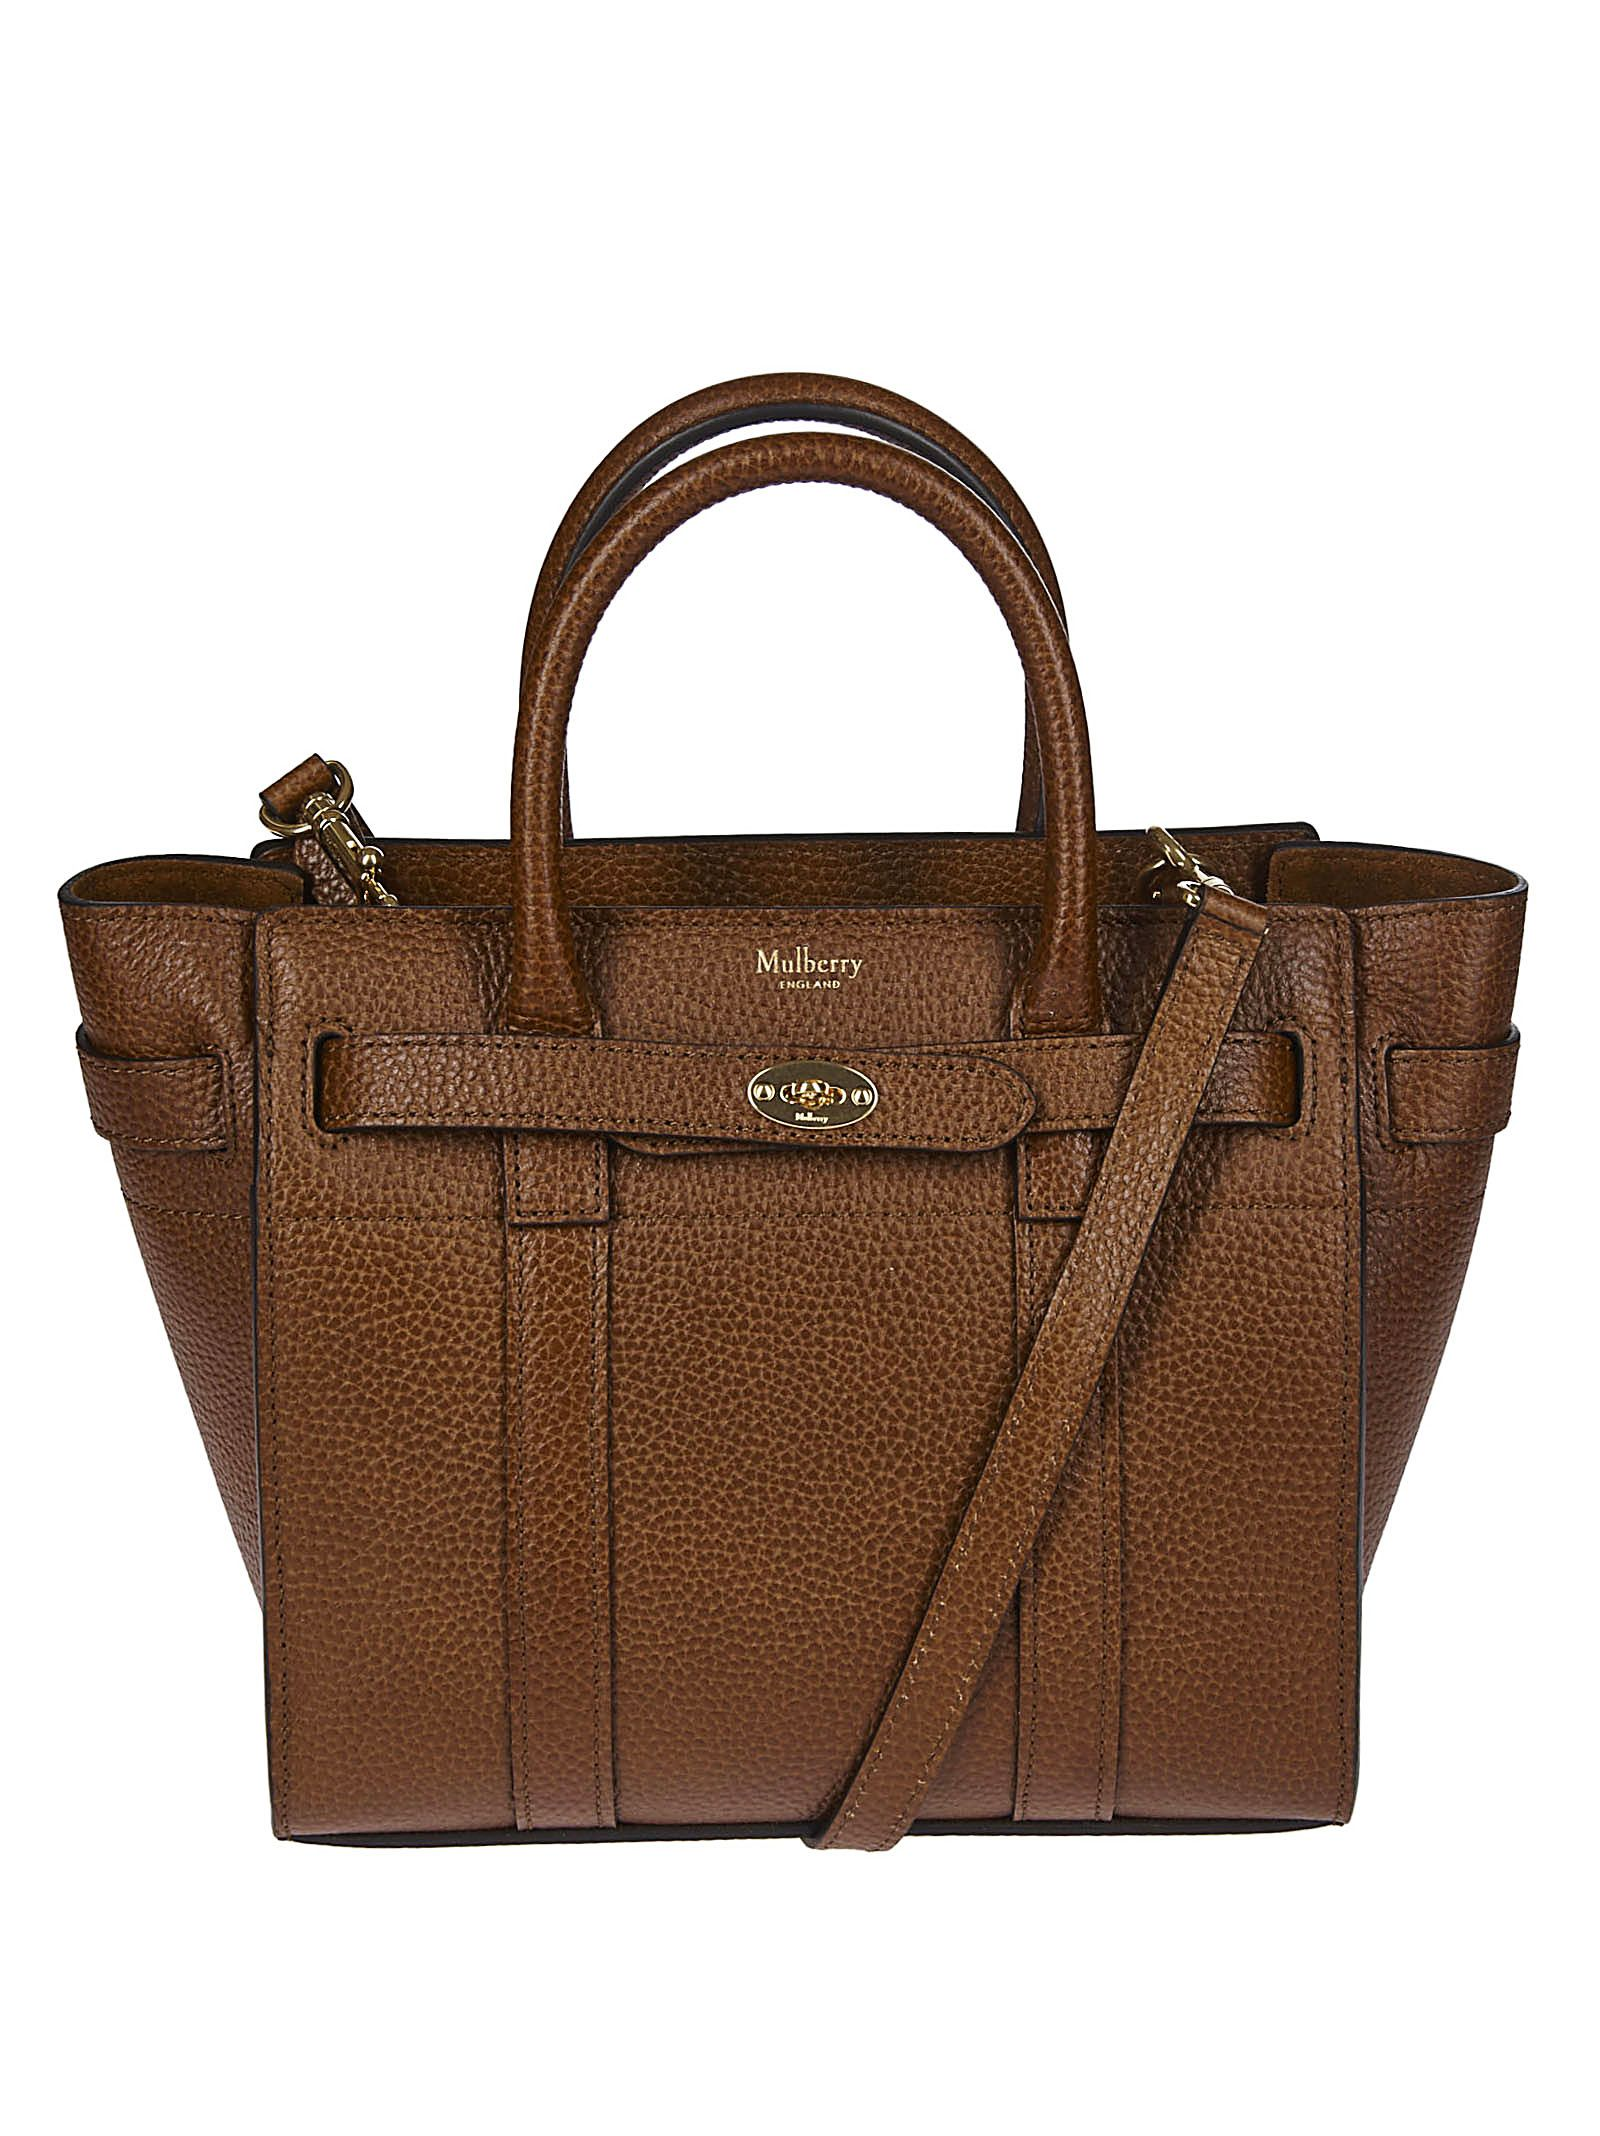 b8315f76623 Mulberry Mulberry Small Bayswater Tote - Brown - 10829645